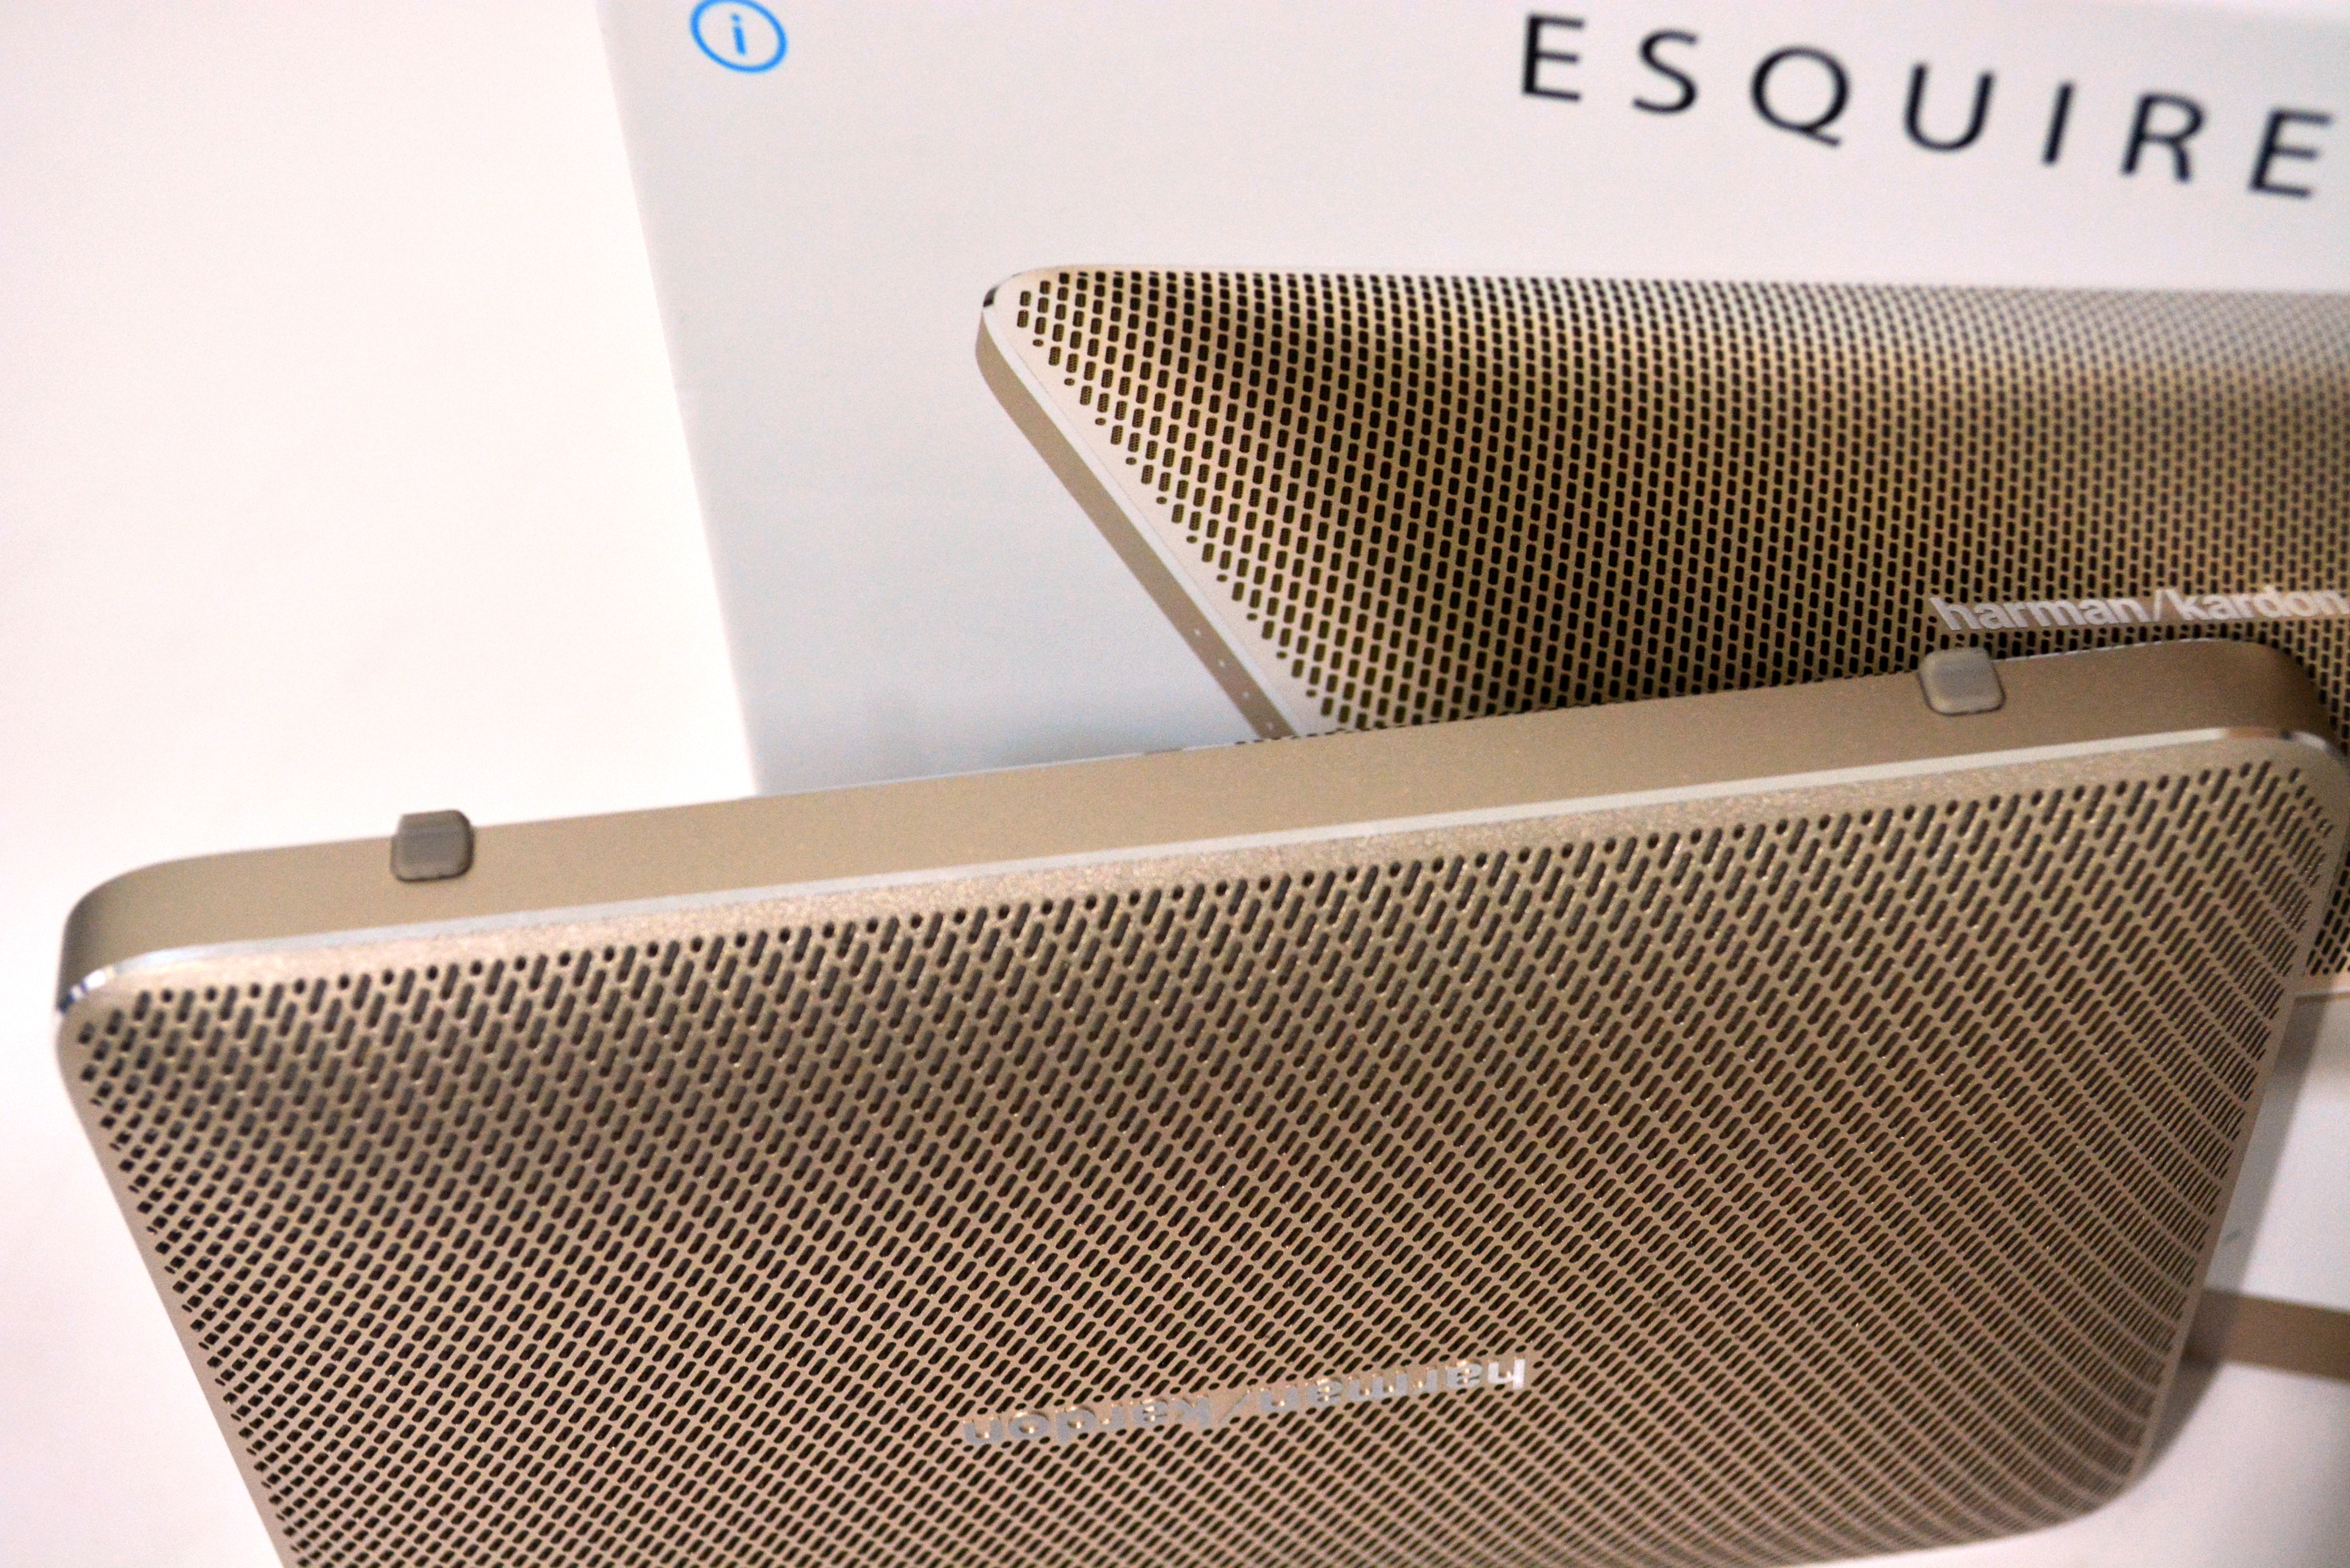 The Esquire 2 has a pair of rubber feet on the bottom to keep the device stand in its place.